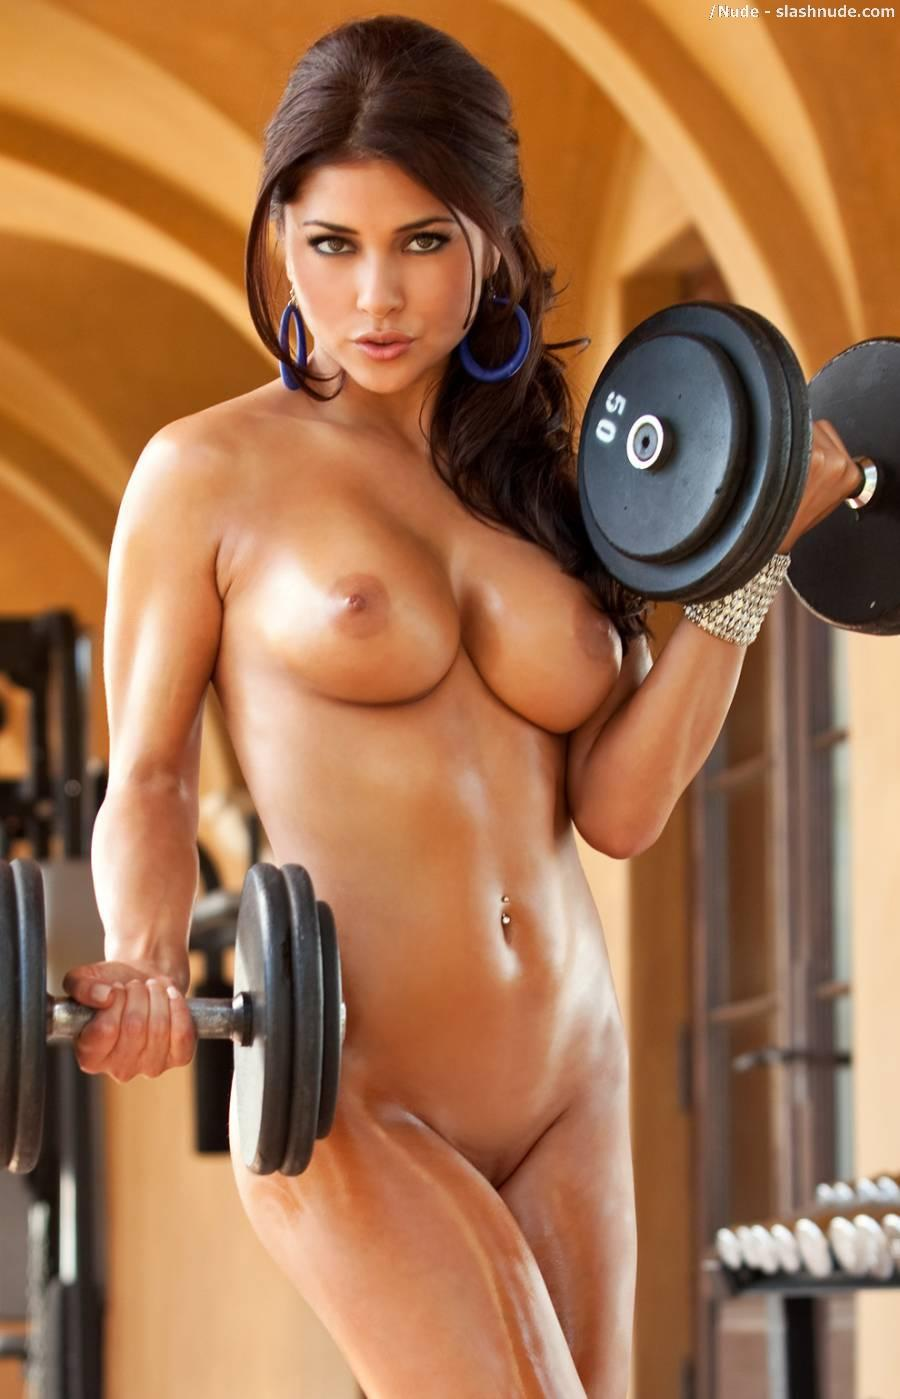 Arianny-Celeste-nude-workout-for-UFC-4.jpg